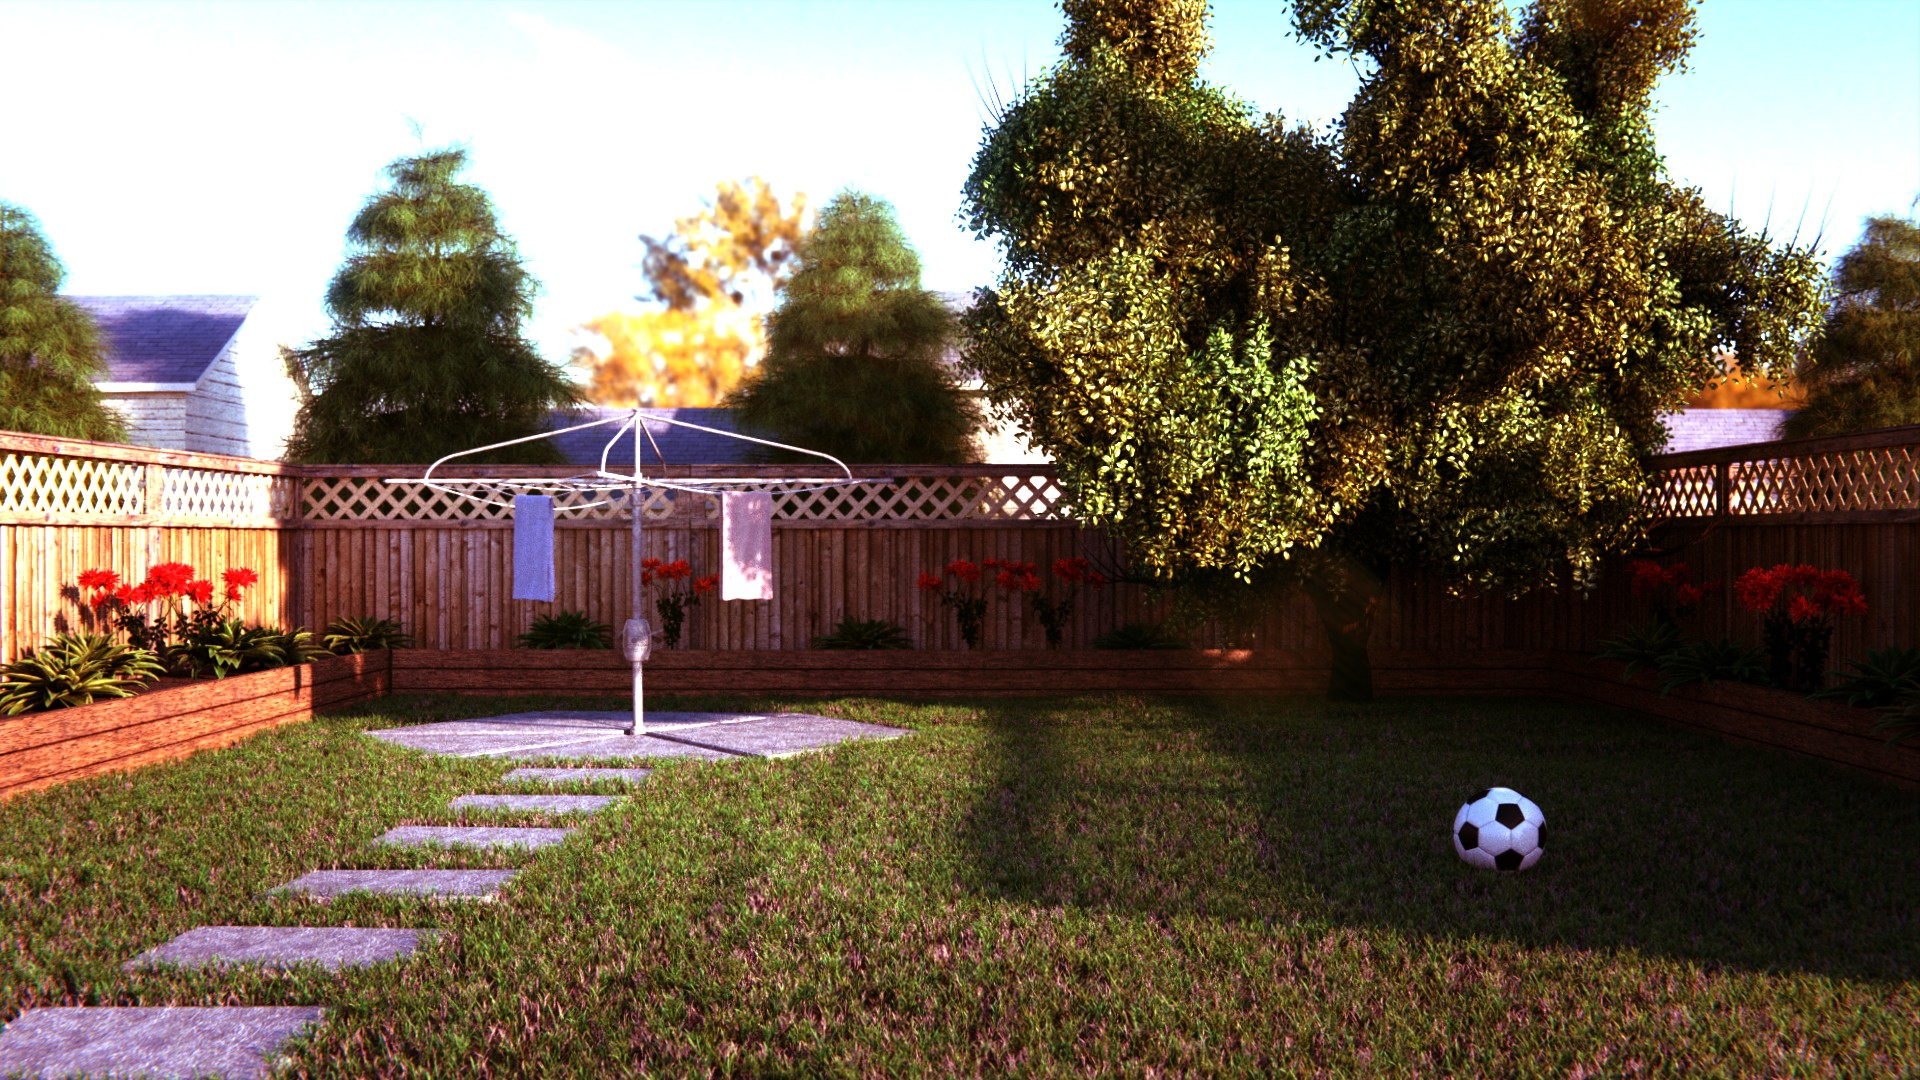 10 Things You Should Do To Create Awesome 3D Environments (Part 2)